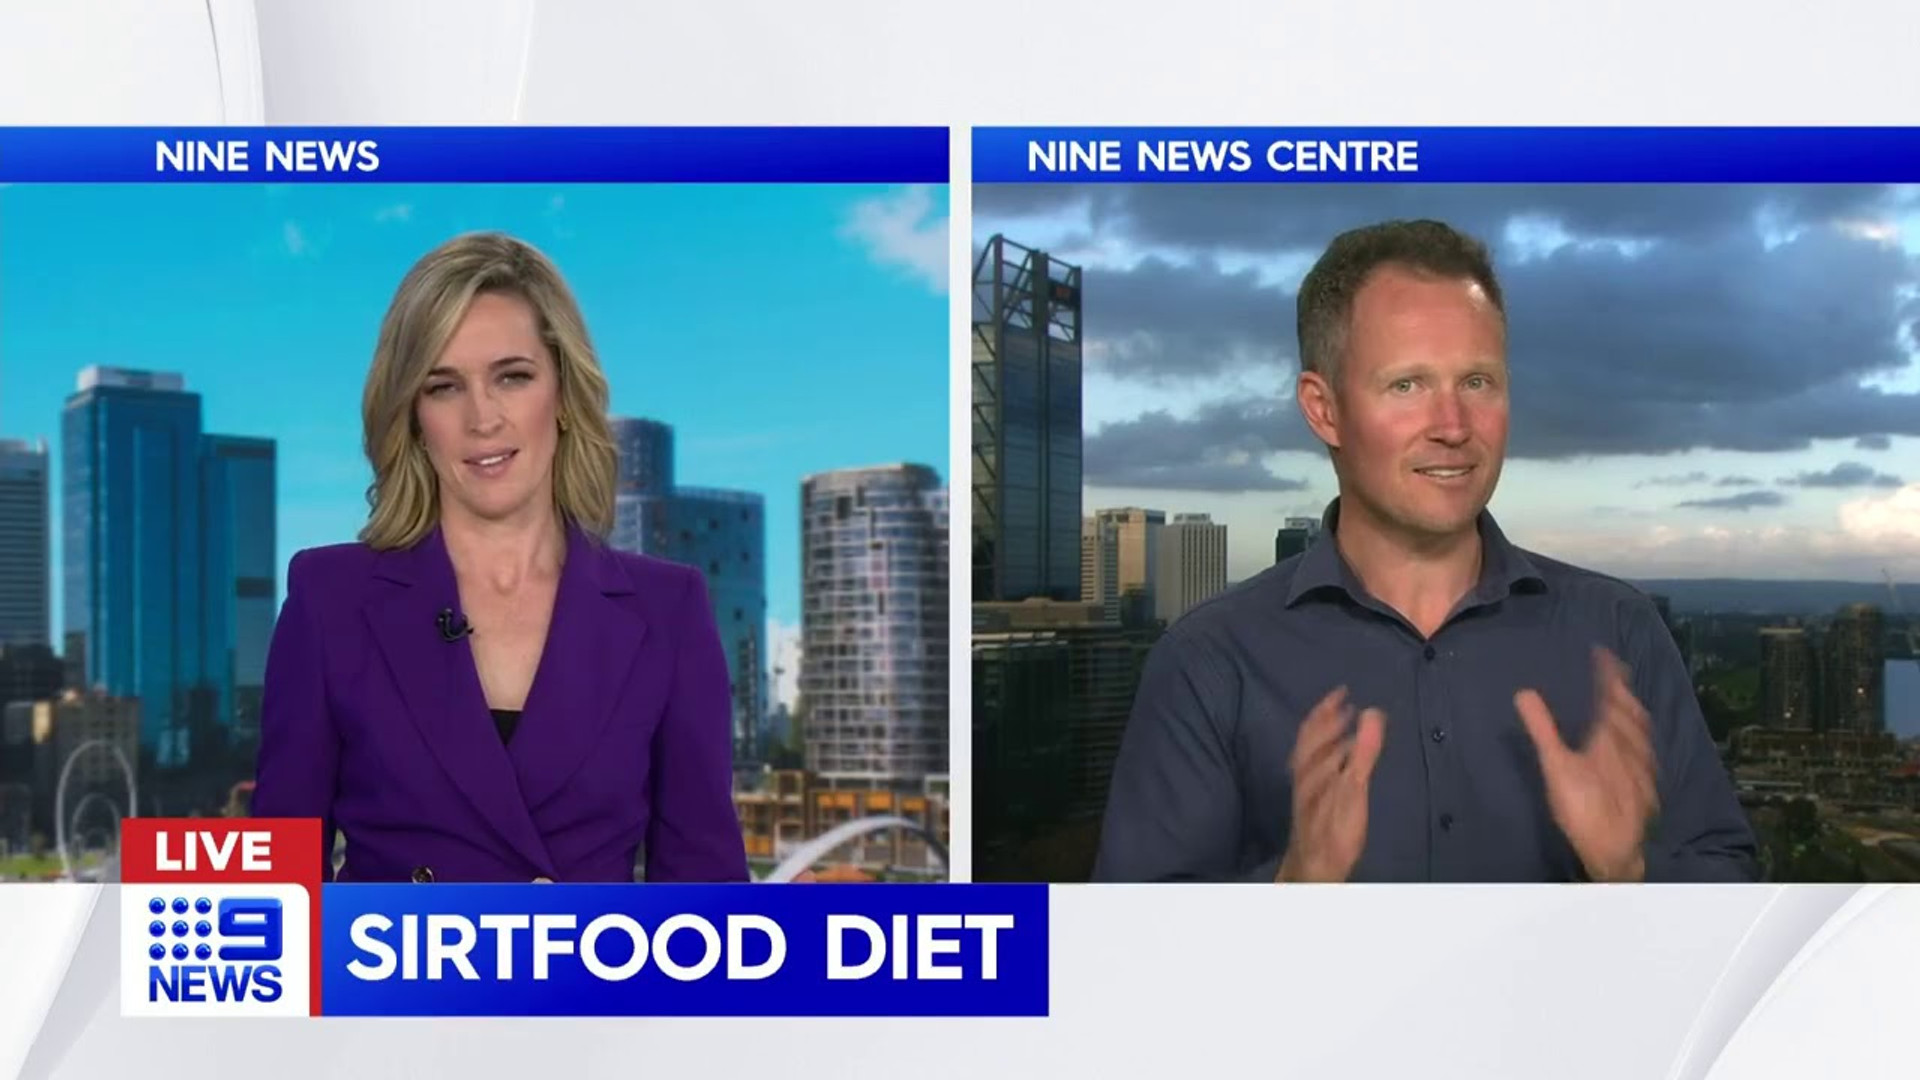 Dietitian Nick Nation - Sirtfood Diet